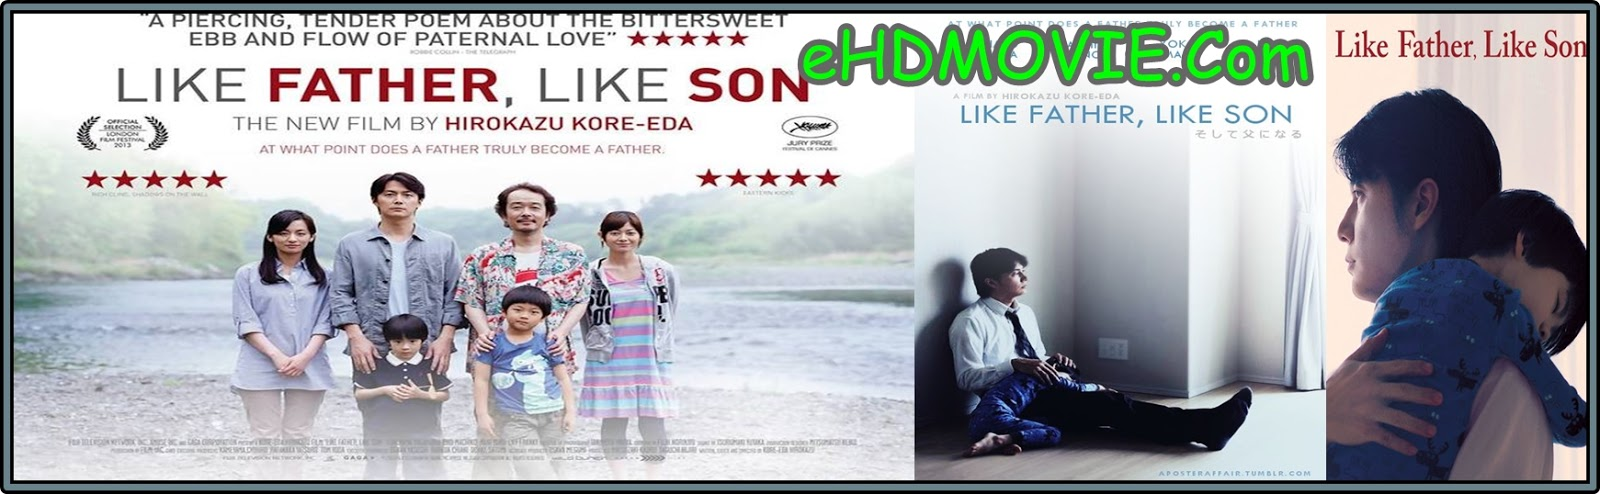 Like Father, Like Son 2013 Full Movie Korean 720p - 480p ORG BRRip 450MB - 950MB ESubs Free Download